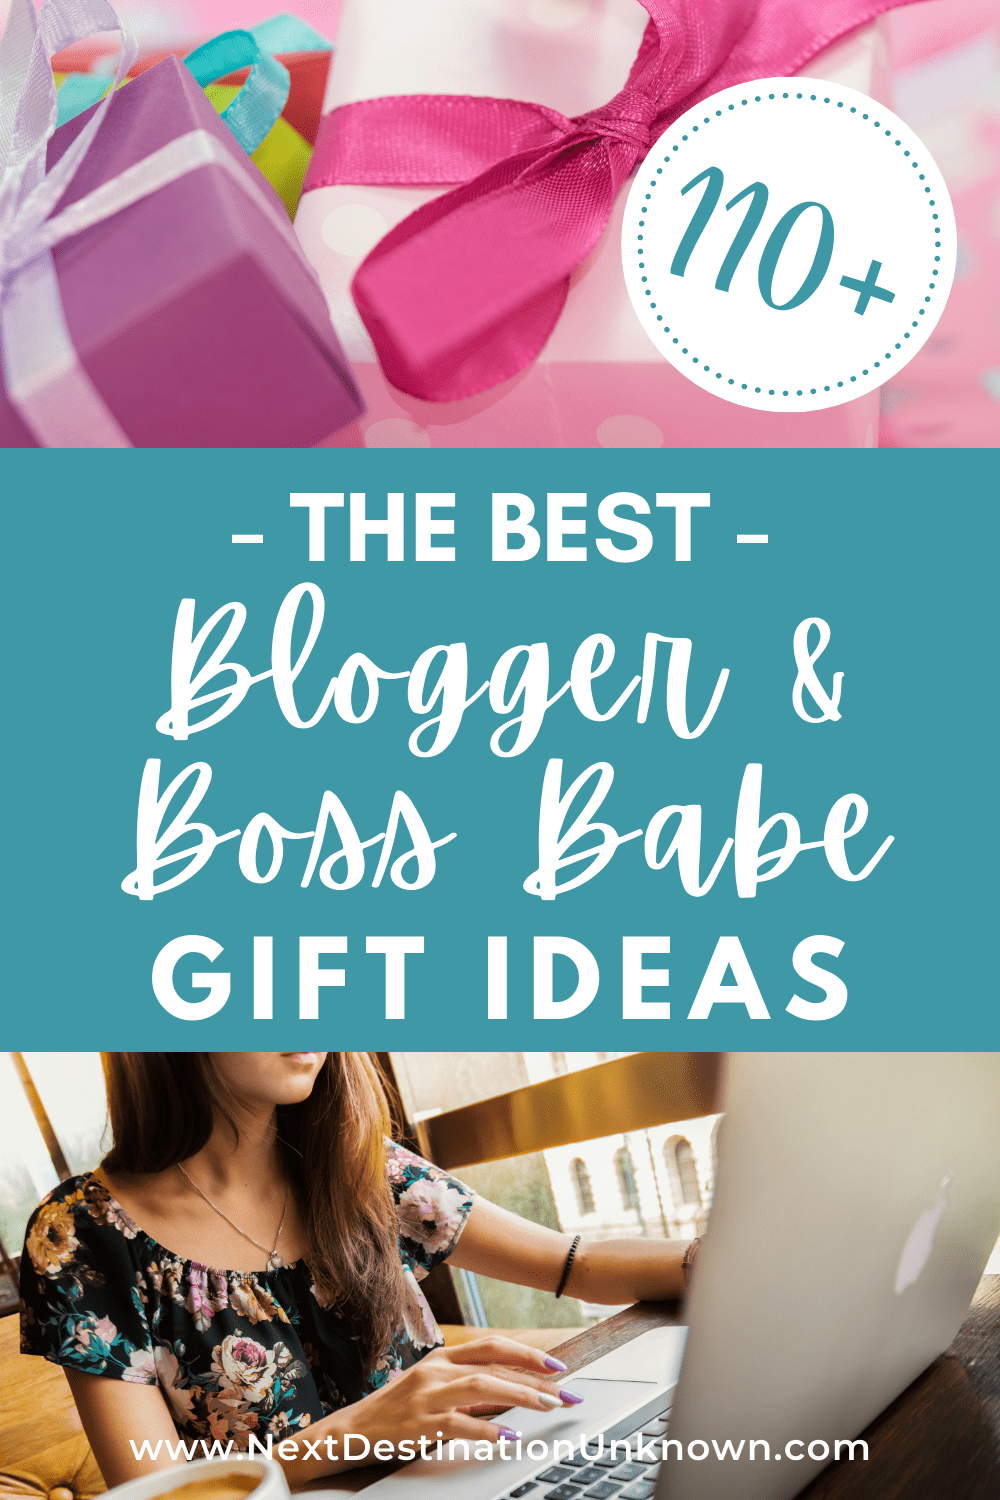 110+ of the Best Gifts for Bloggers or Boss Babes